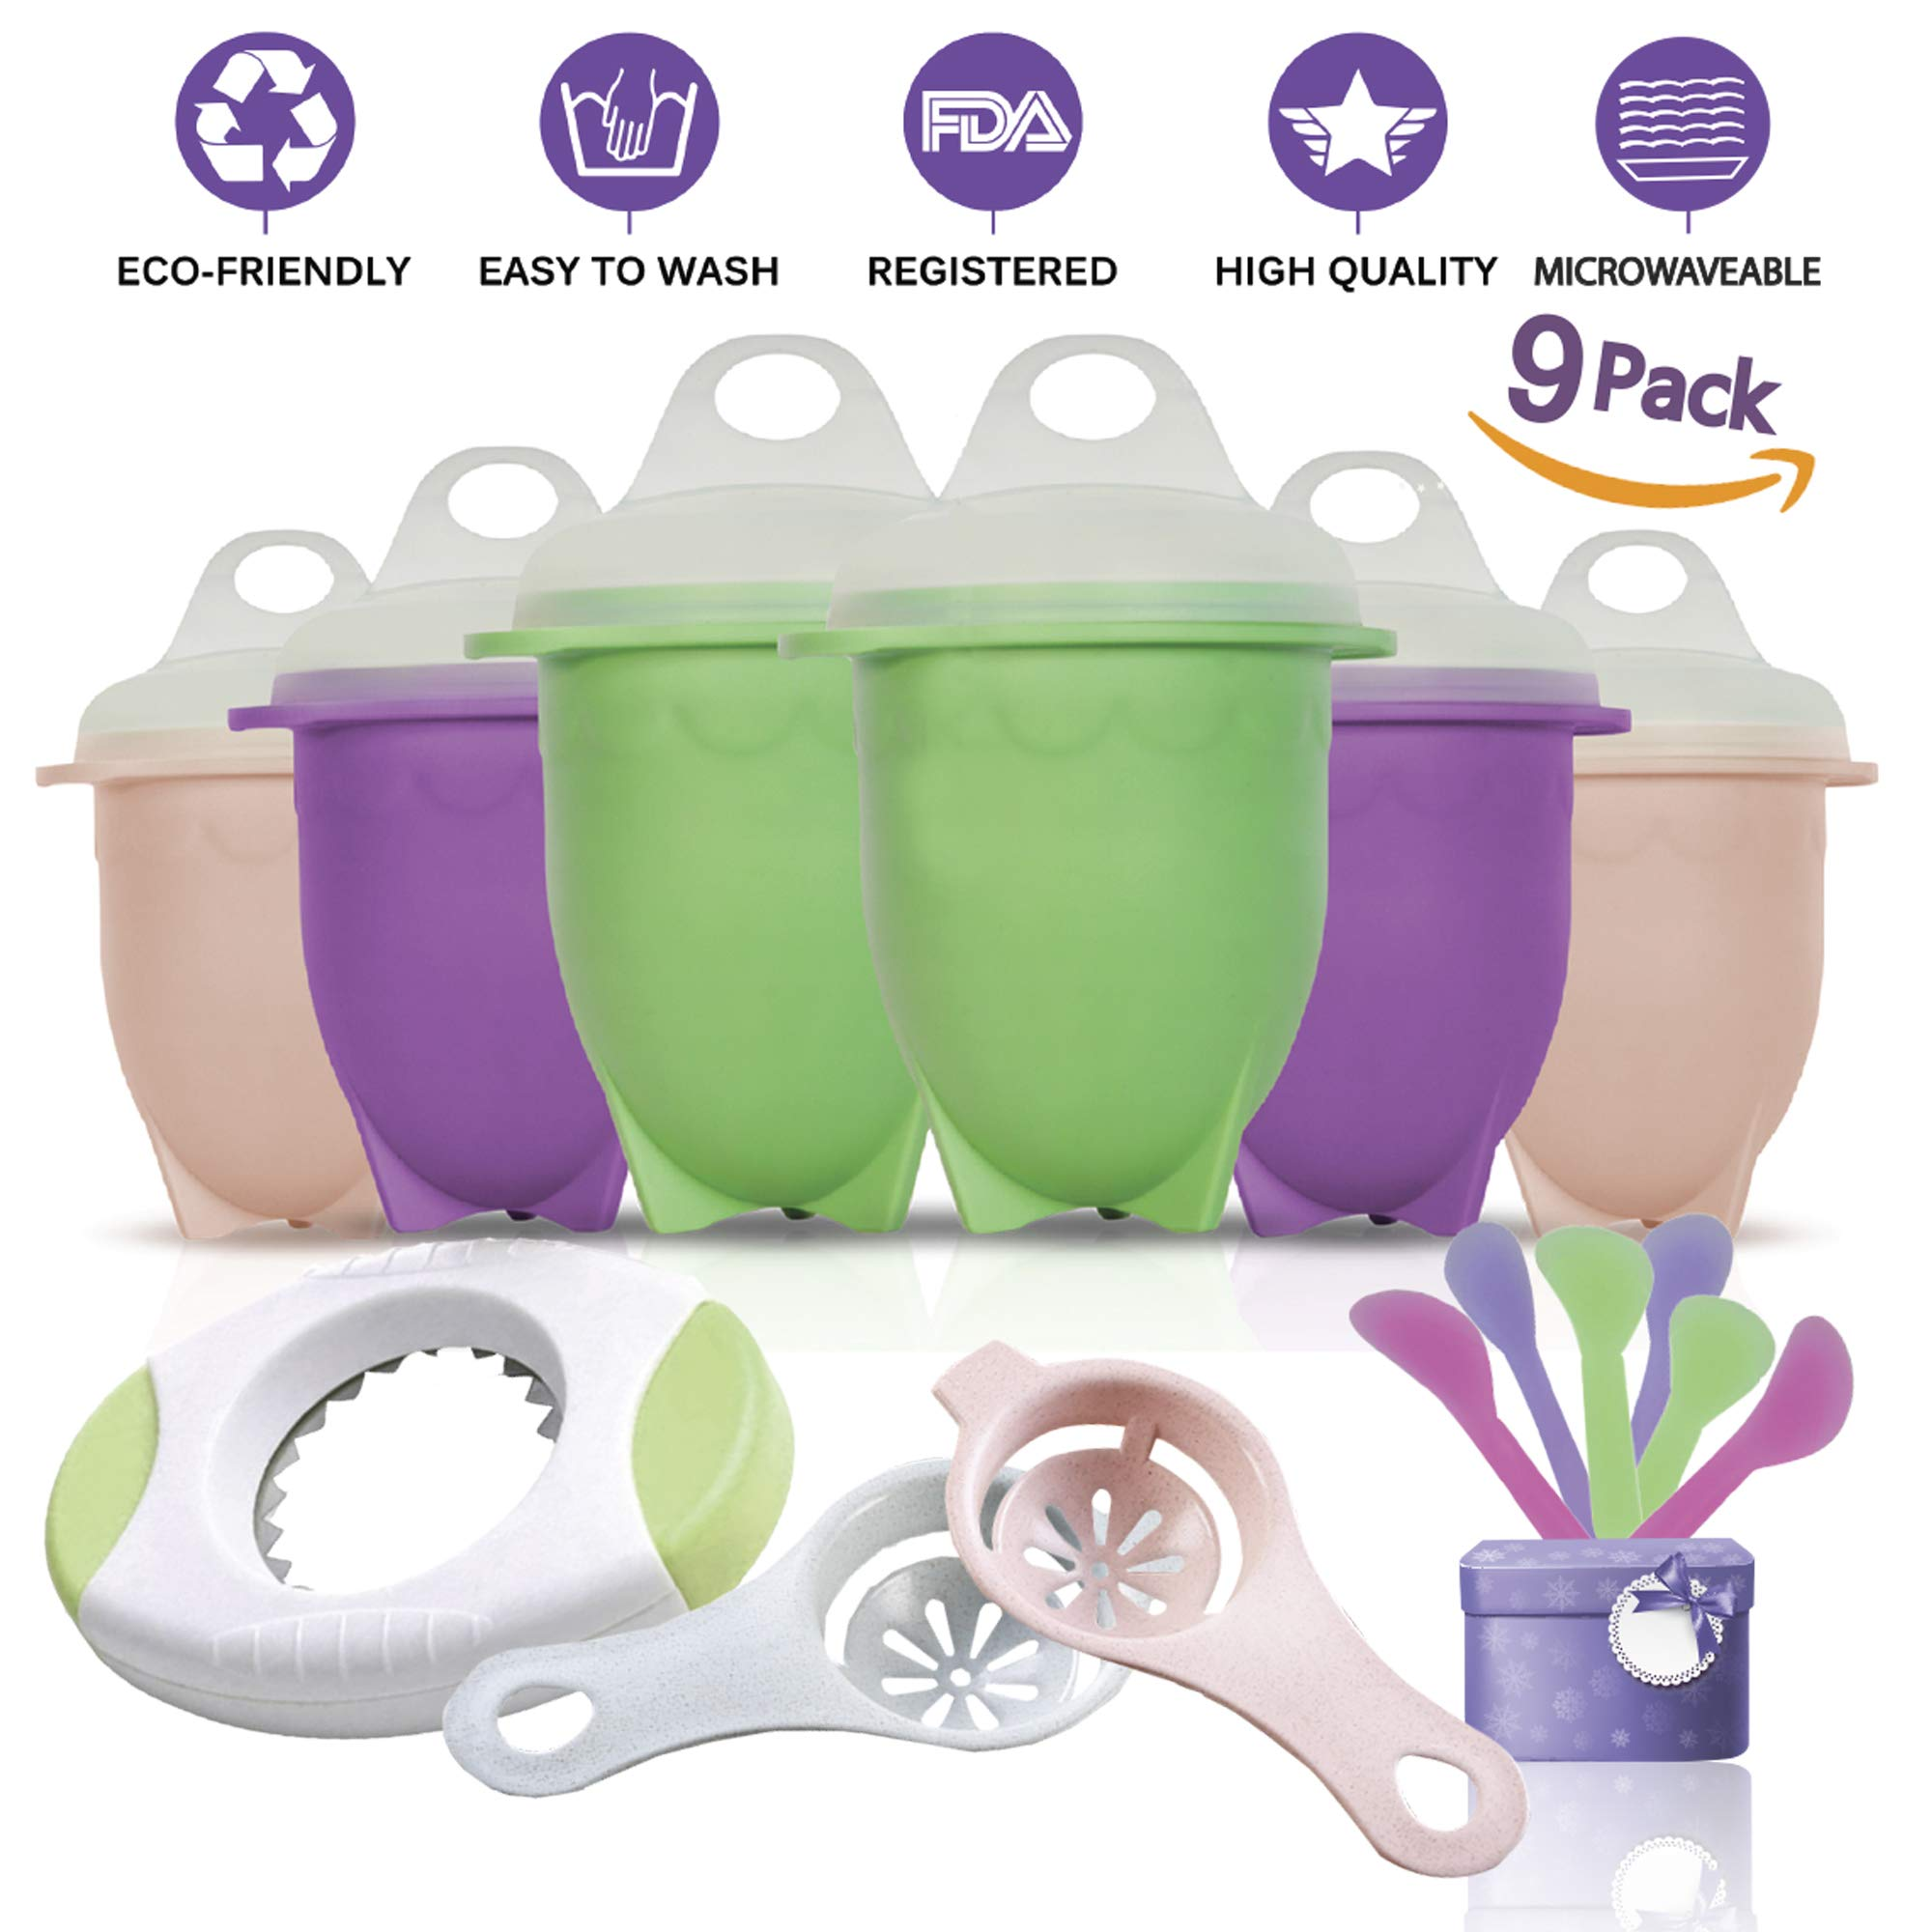 Silicone Egg Cooker Extended-Eggs Poacher Maker, Soft & Hard Boiled Eggs Without the Shell, 100% Nonstick Material, Suitable for Microwave- 6 Cups, Egg Cracker & 2 Egg Separators & 6 Flat Spoons Set